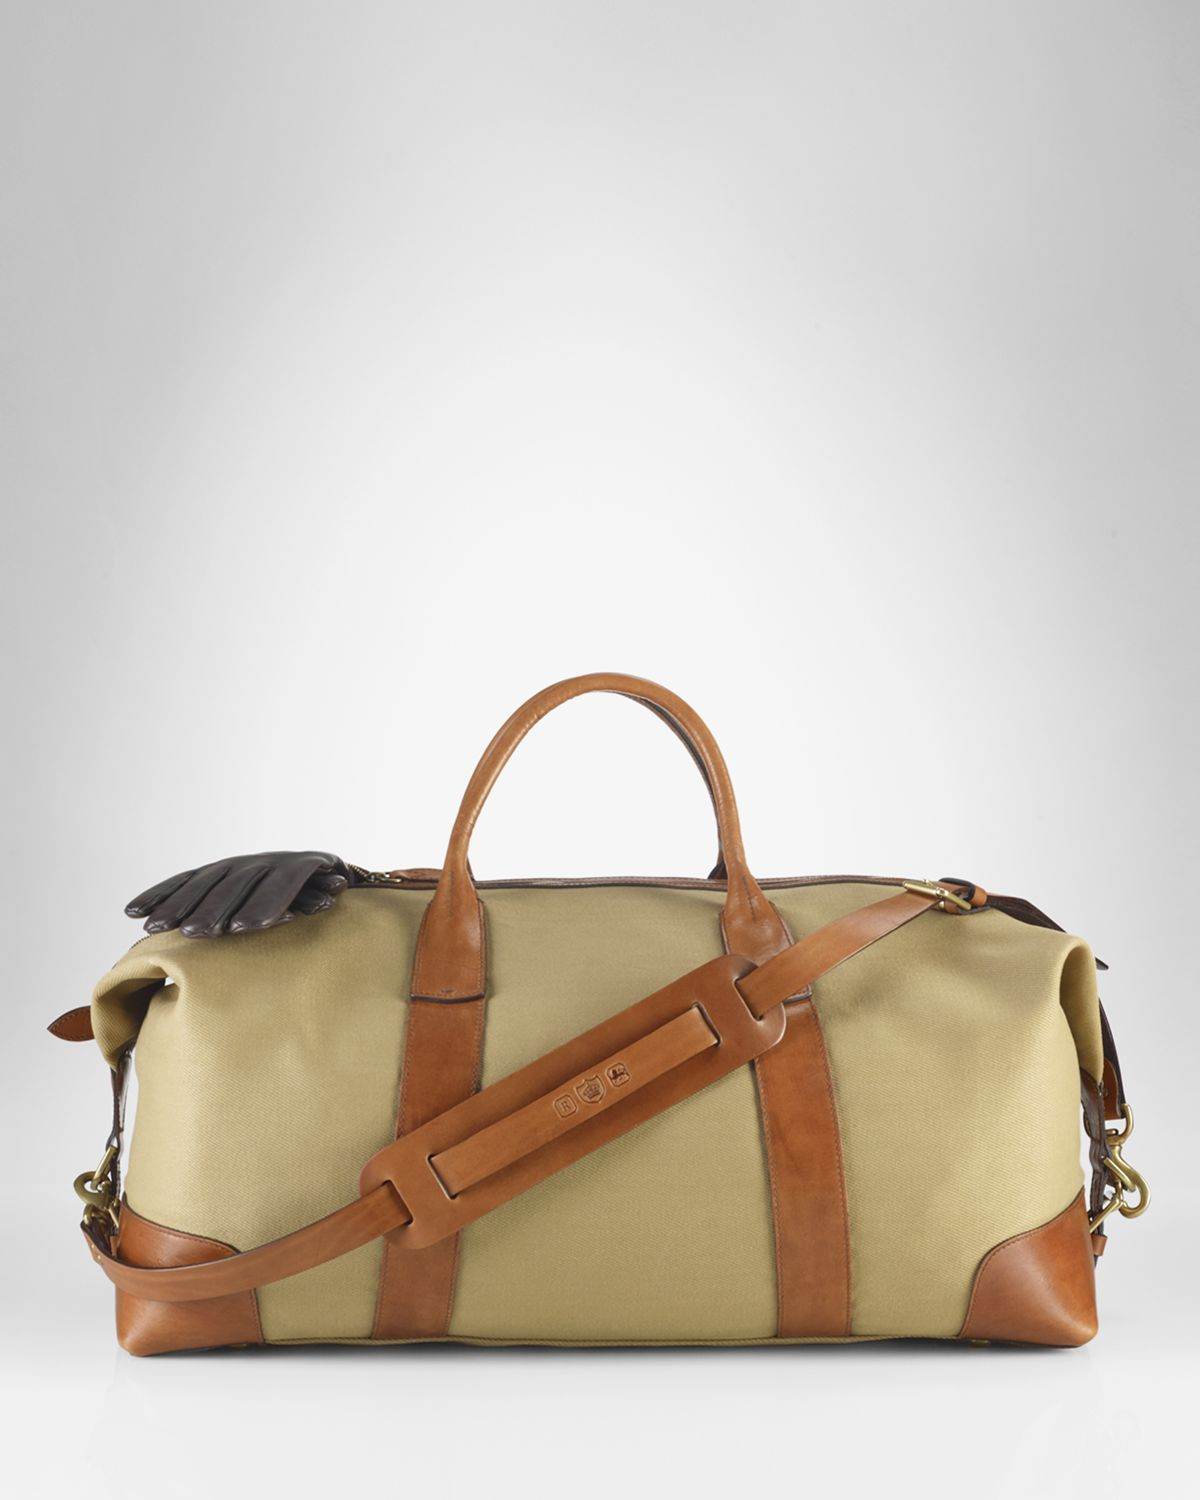 a83f93fd40da ... shop norway lyst ralph lauren polo canvas duffle bag in natural for men  cef01 8aa9c 18767